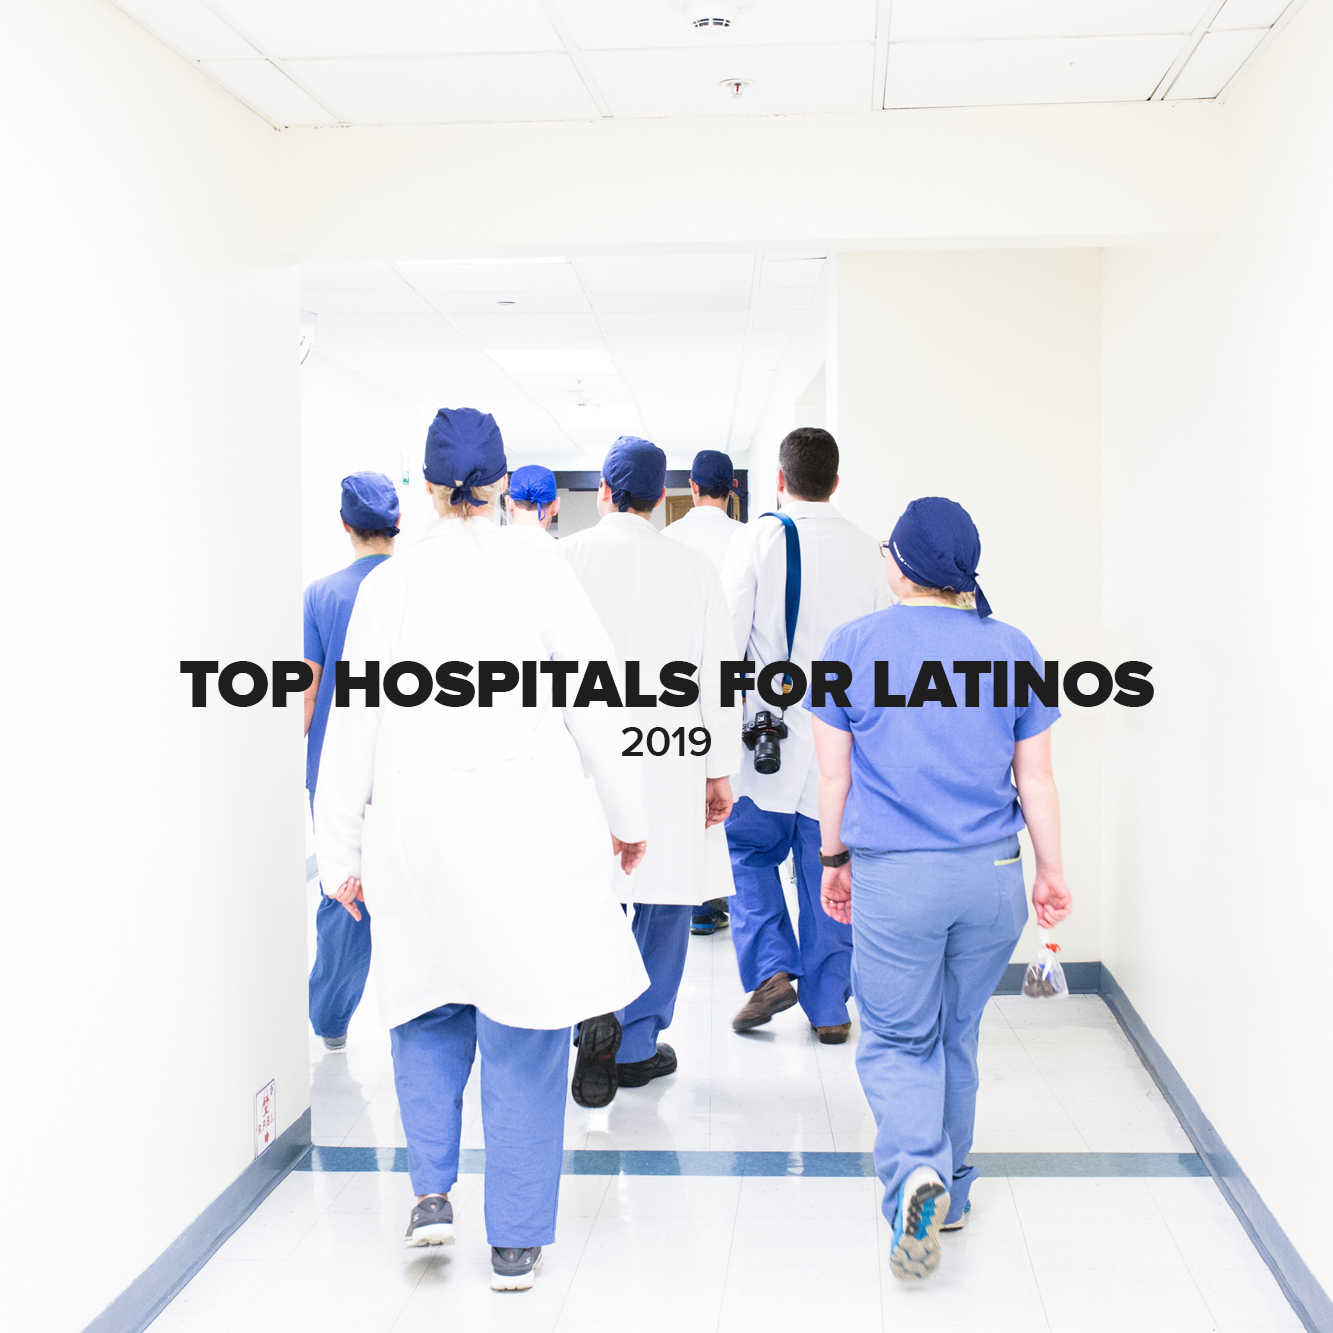 Top Hospitals for Latinos — Latino Leaders Magazine